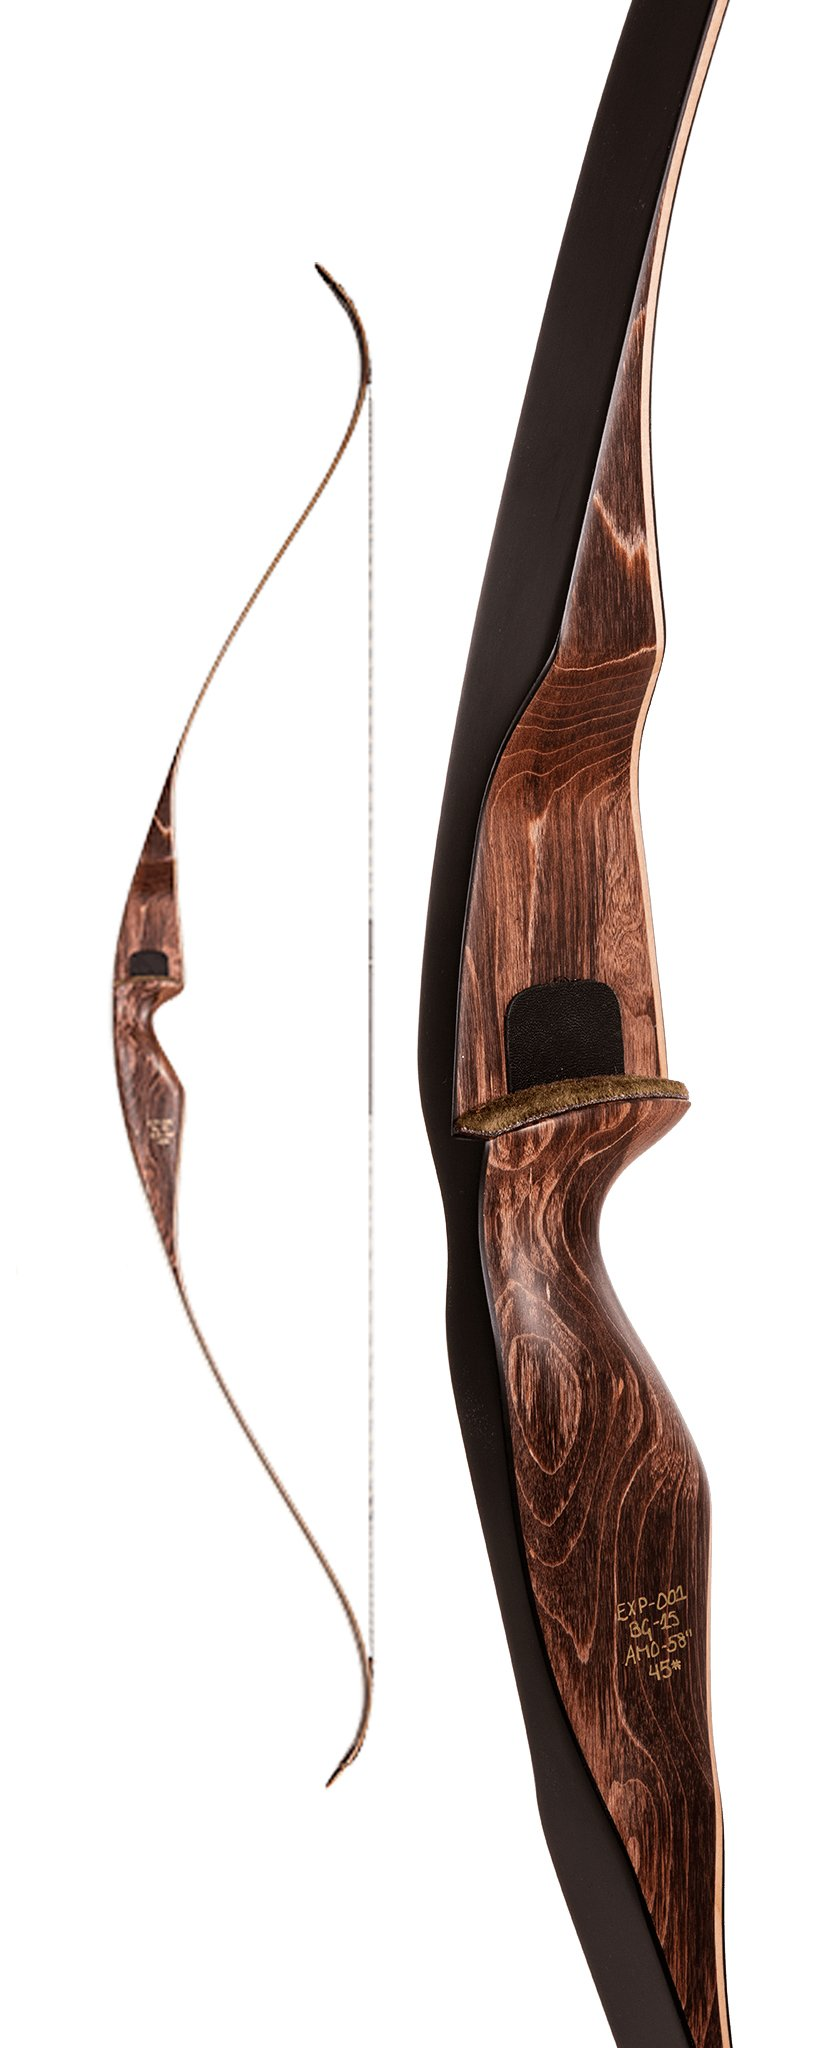 Bear Archery Grizzly Recurve Traditionell LH / 35 lbs